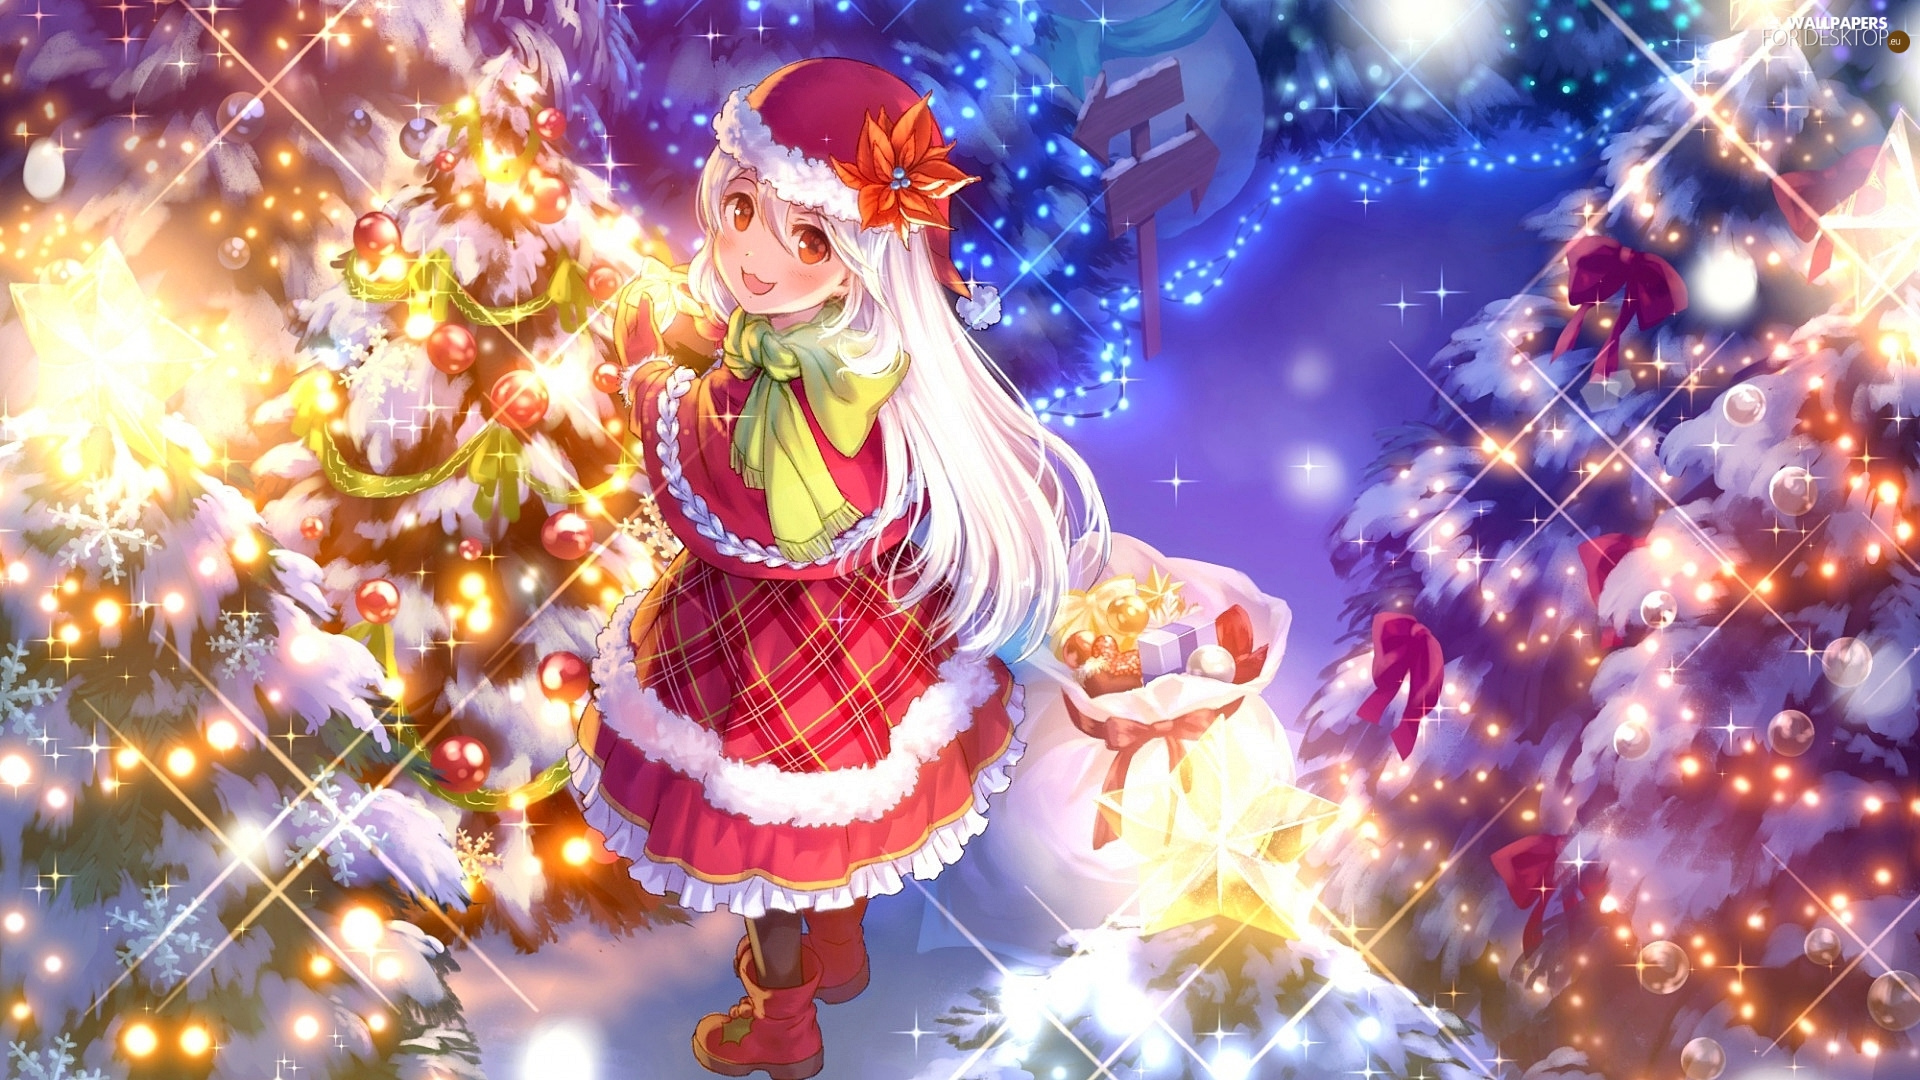 lights, girl, gifts, Christmas, bag, Christmas